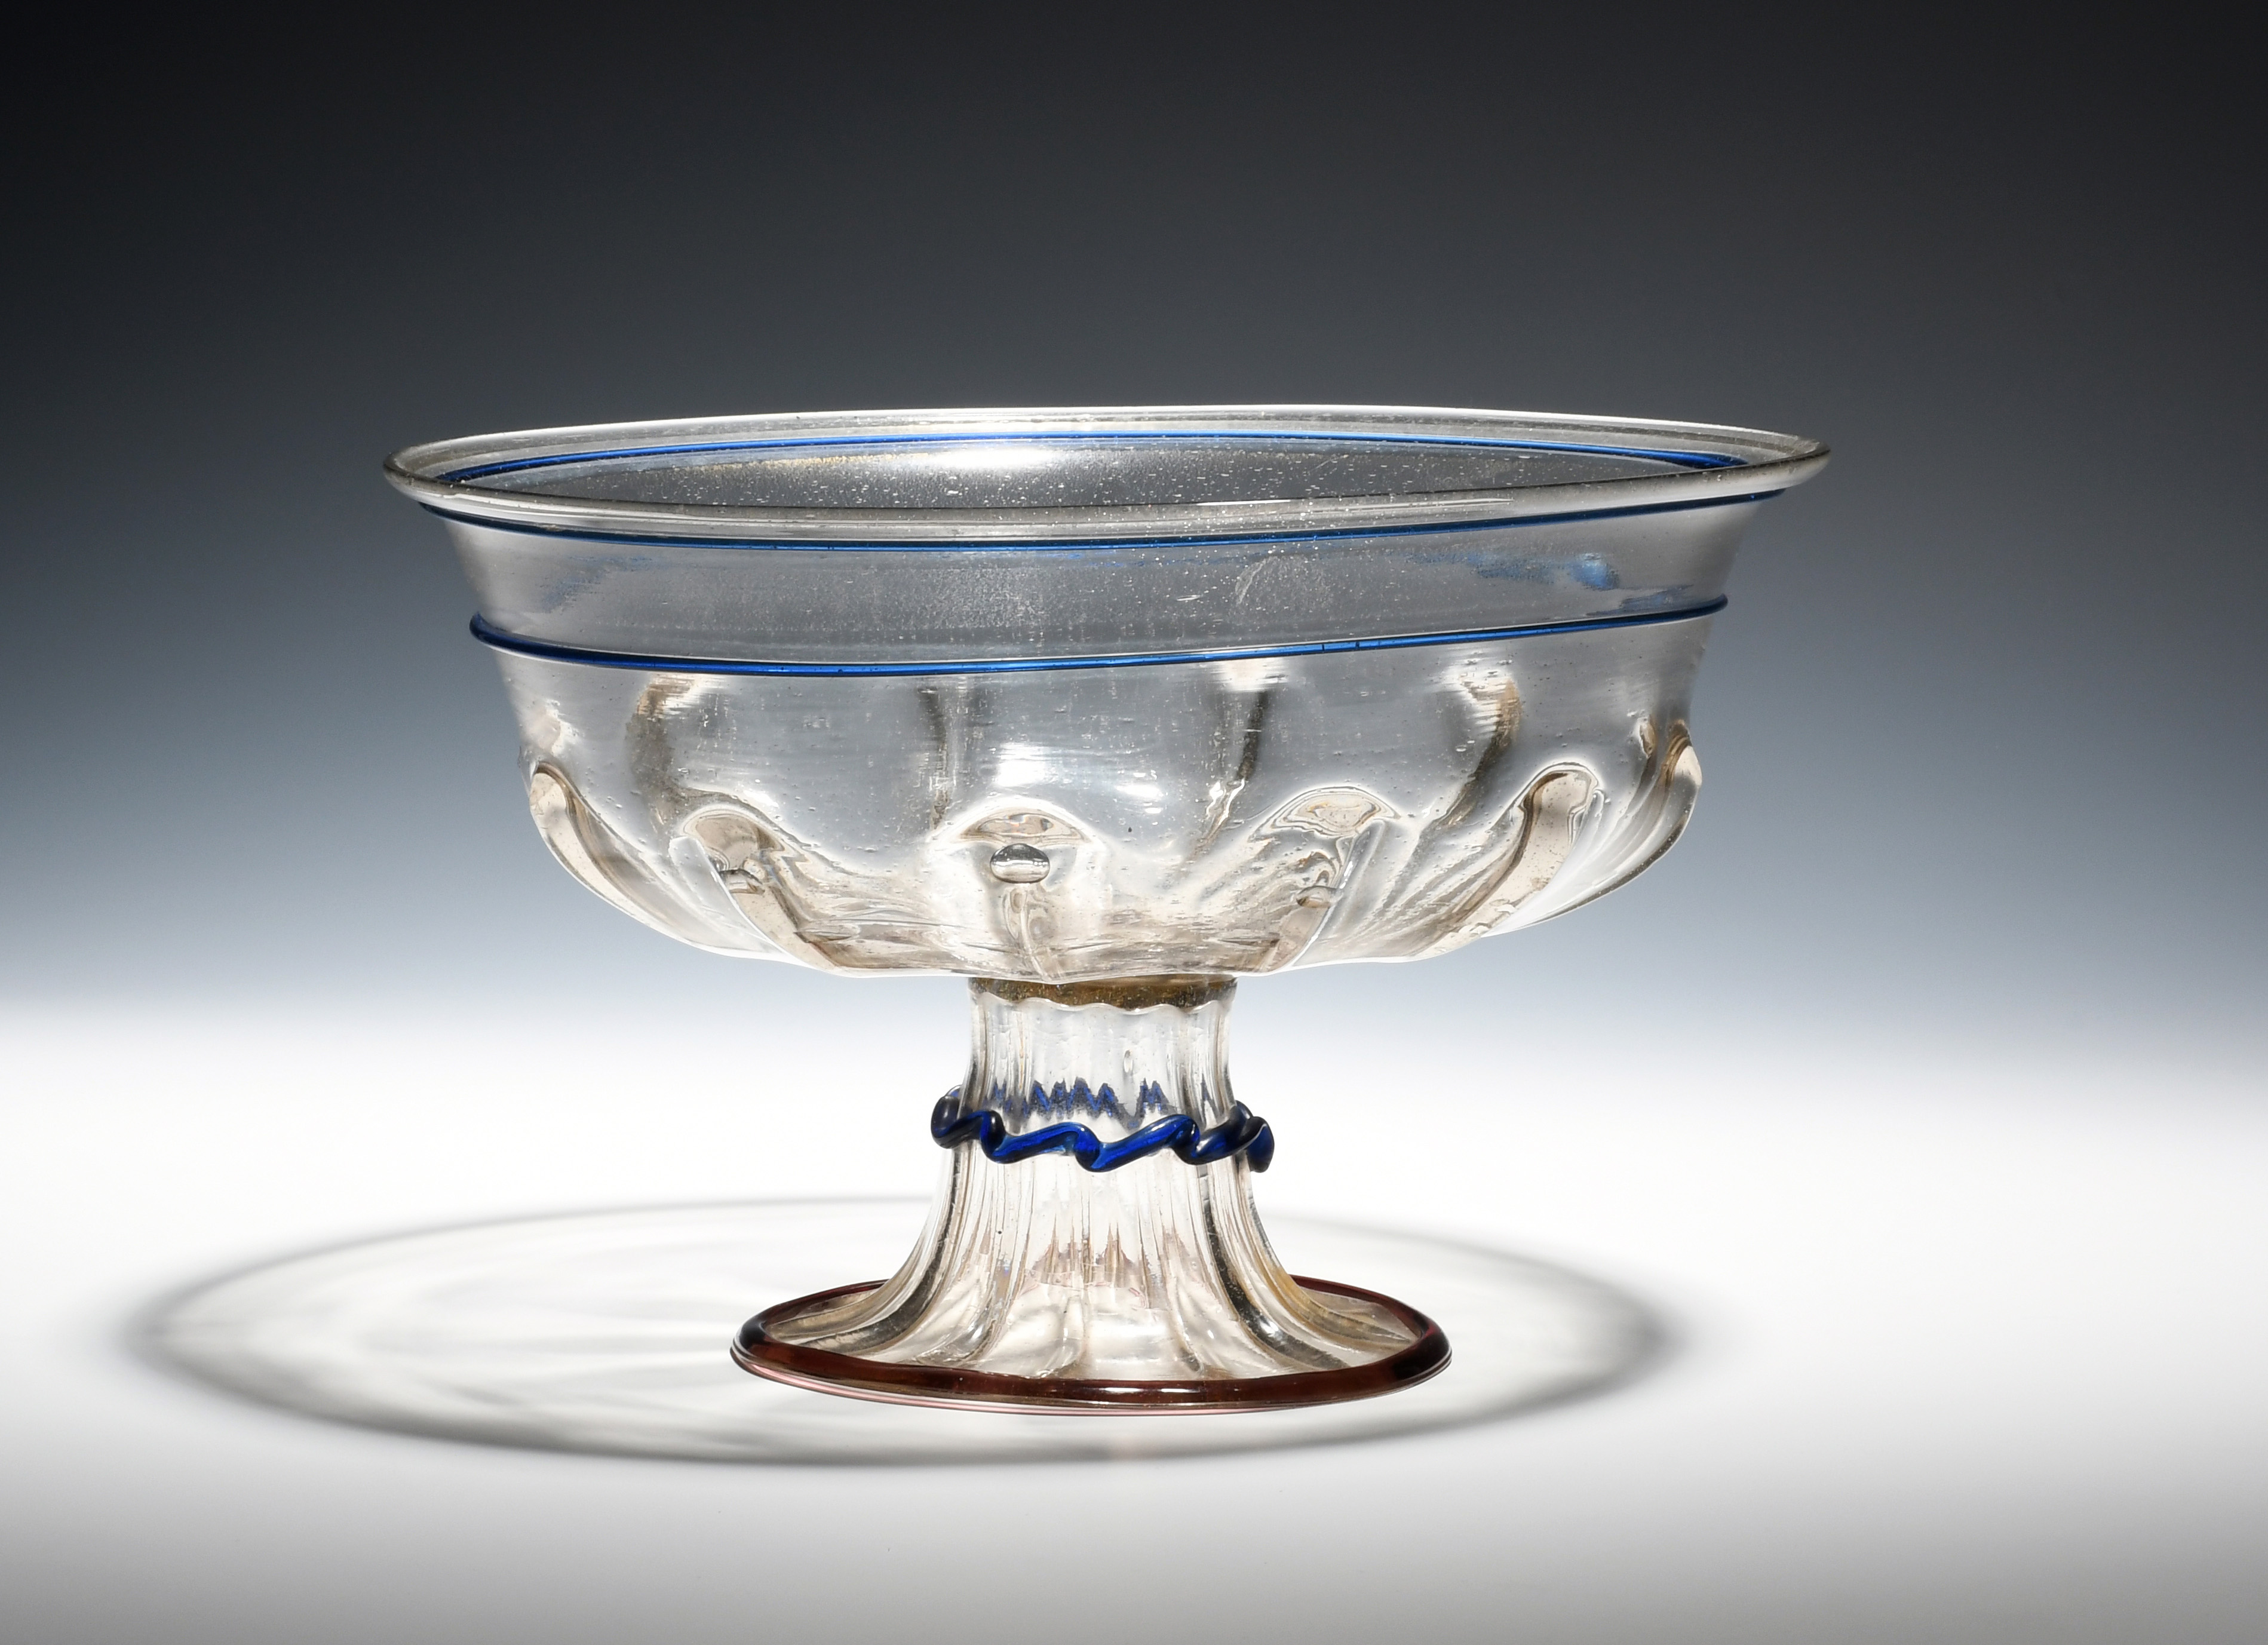 A large façon de Venise footed bowl 15th/16th century, moulded to the underside of the bowl with - Image 2 of 2